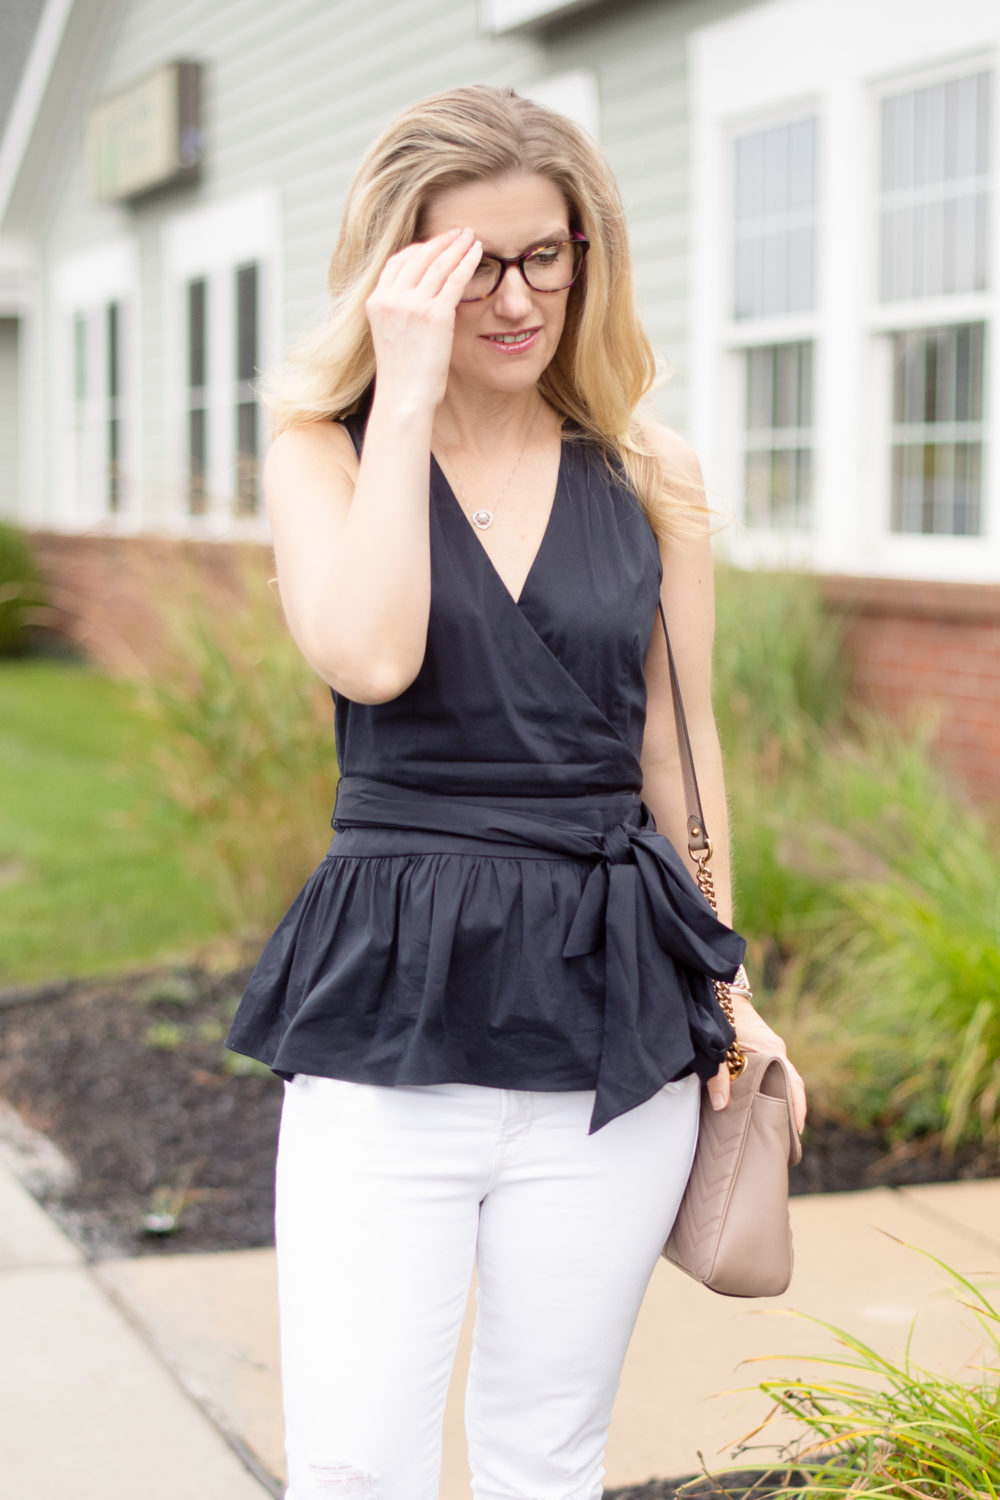 Petite Fashion and Style Blog | VSP Vision Health Campaign